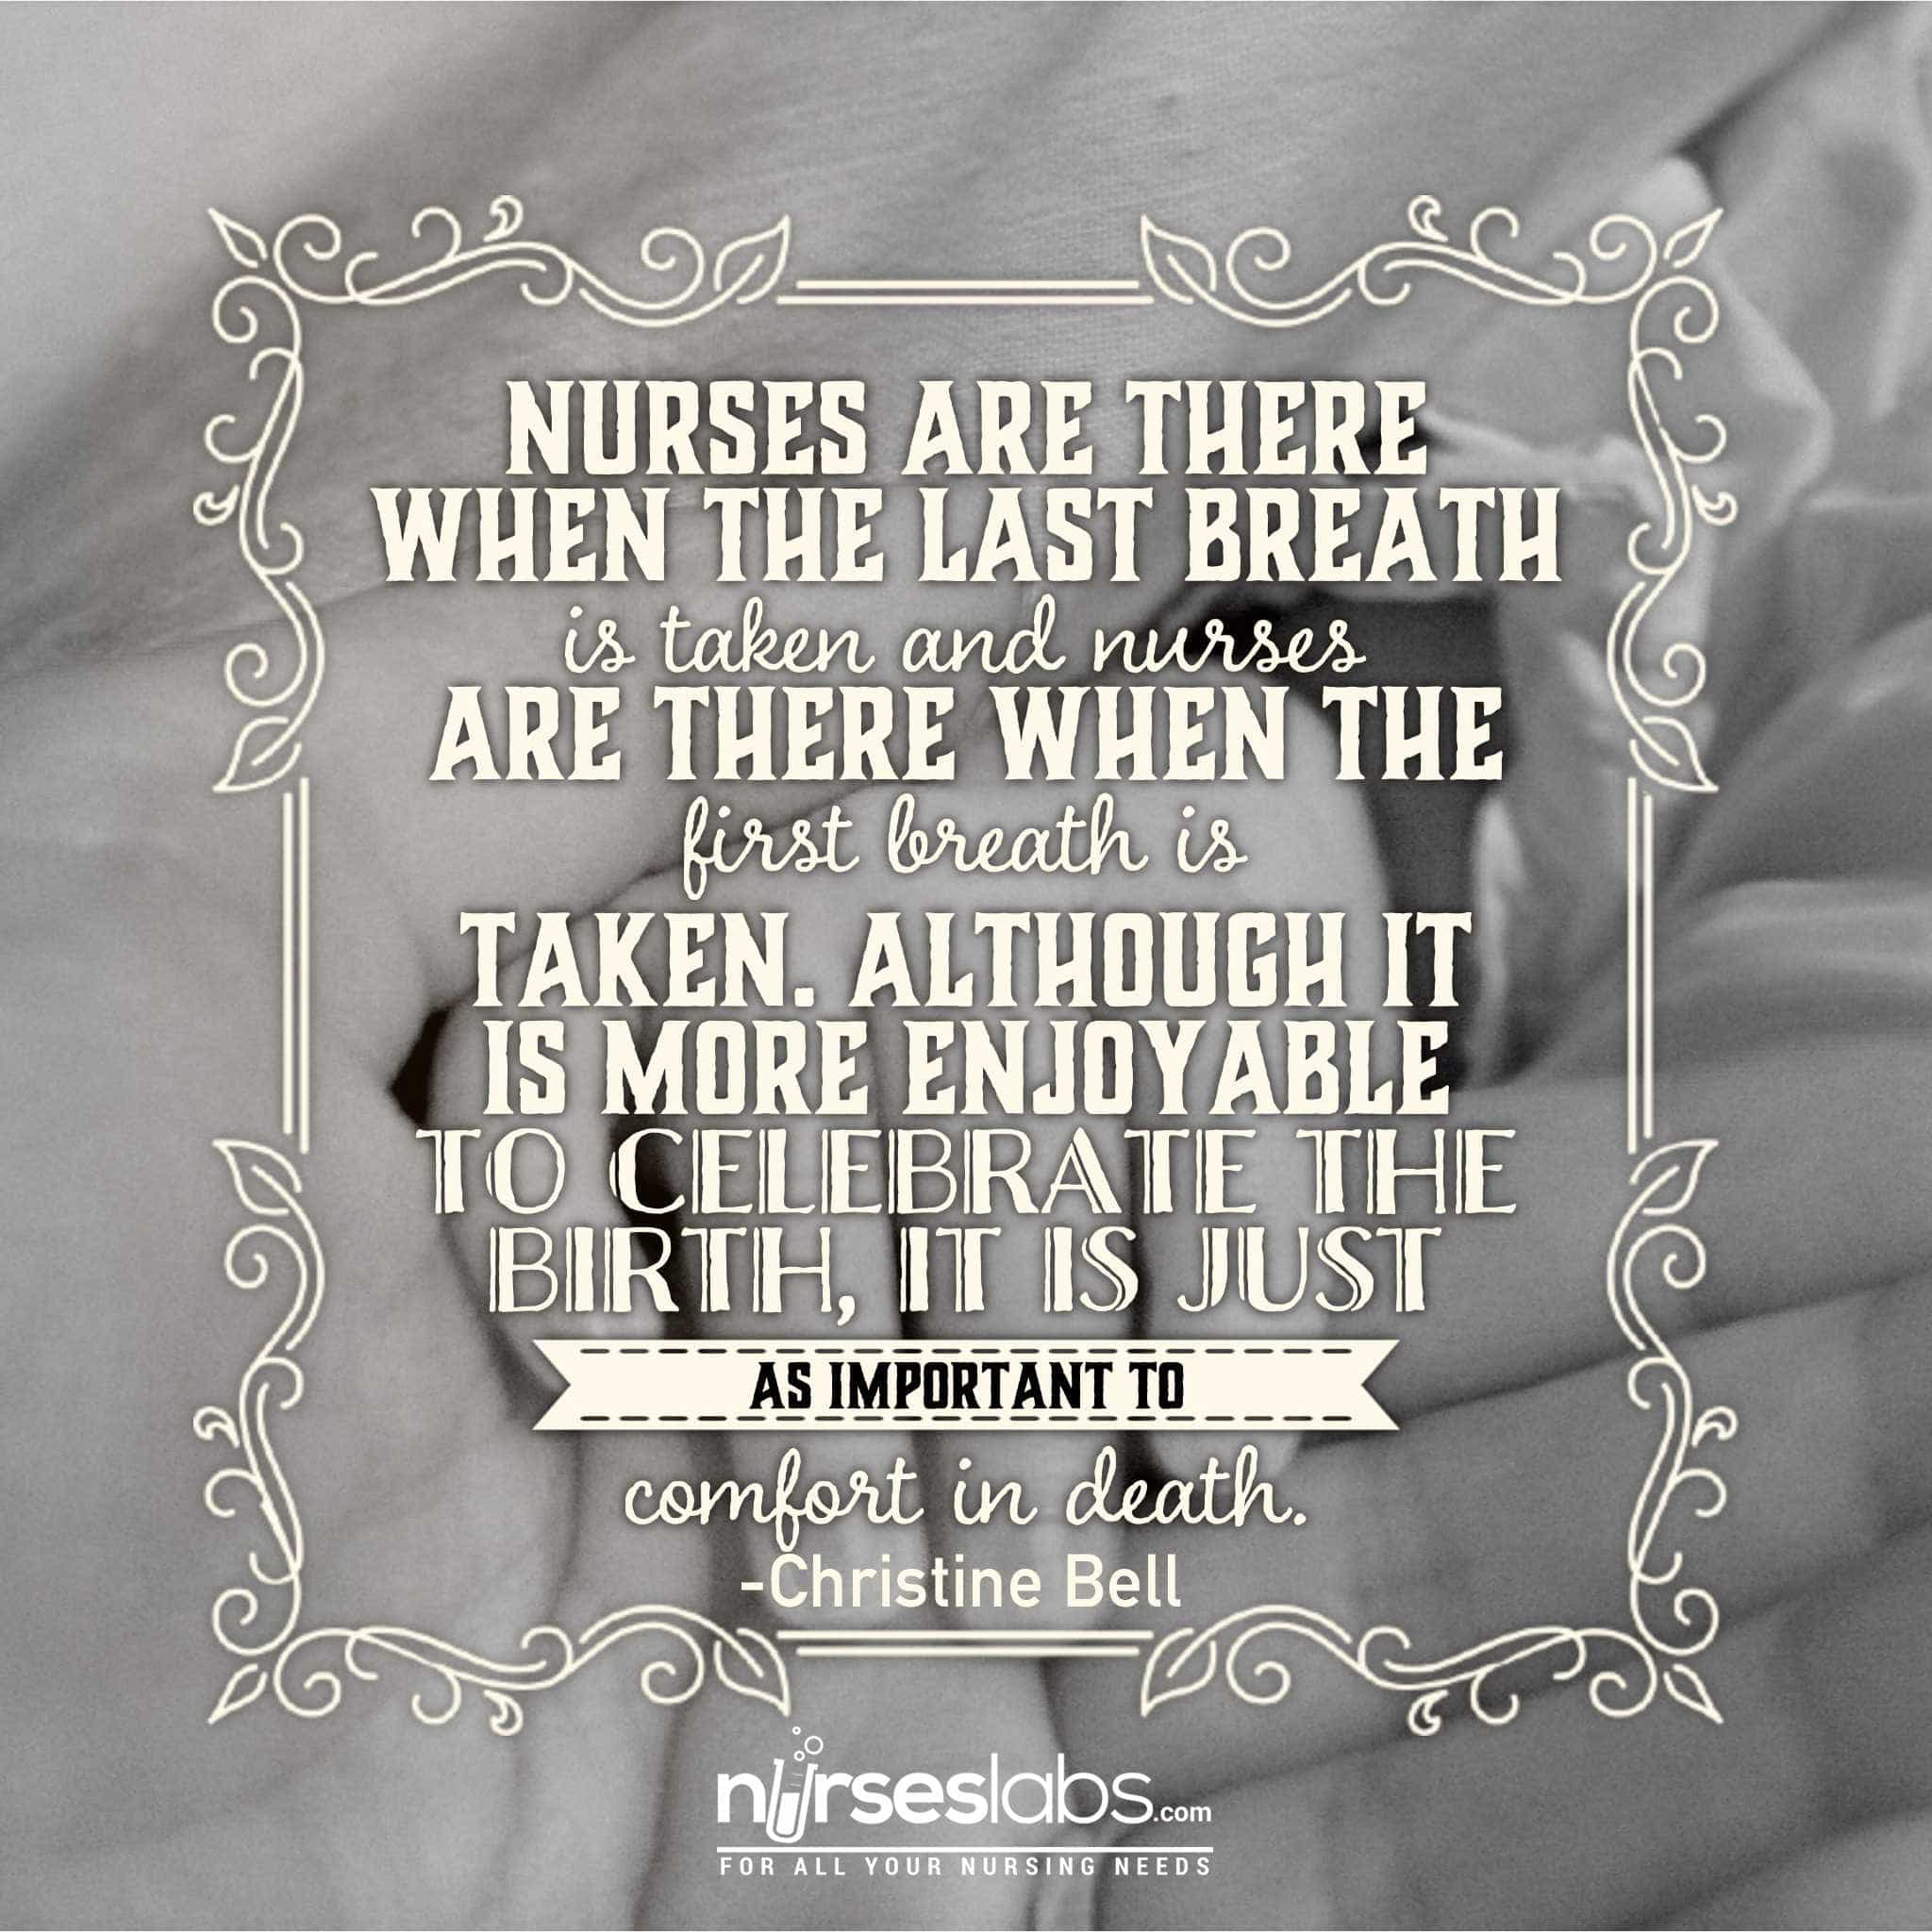 Nurses are there when the last breath is taken and nurses are there when the first breath is taken. Although it is more enjoyable to celebrate the birth, it is just as important to comfort in death. - Christine Bell